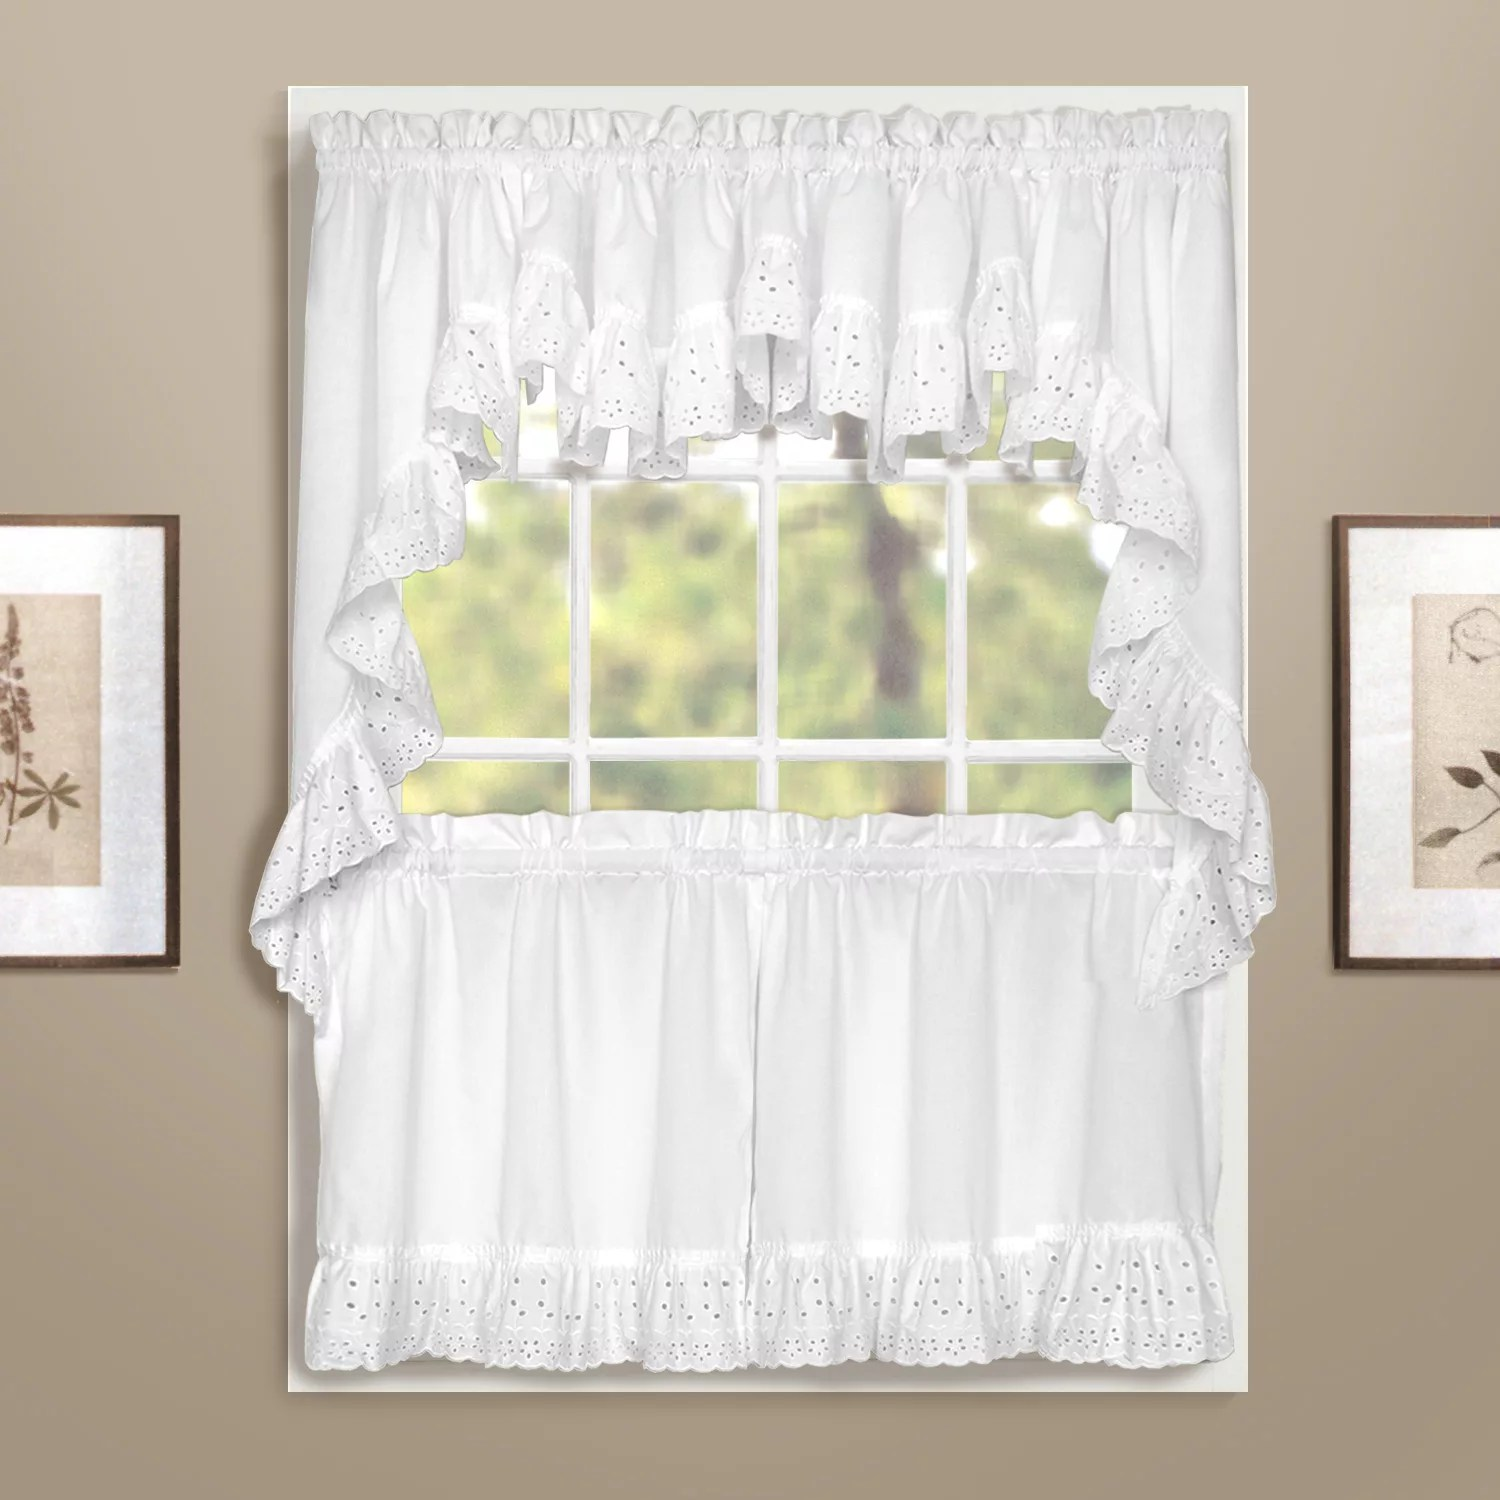 United Curtain Co Vienna Eyelet Swag Tier Kitchen Curtains